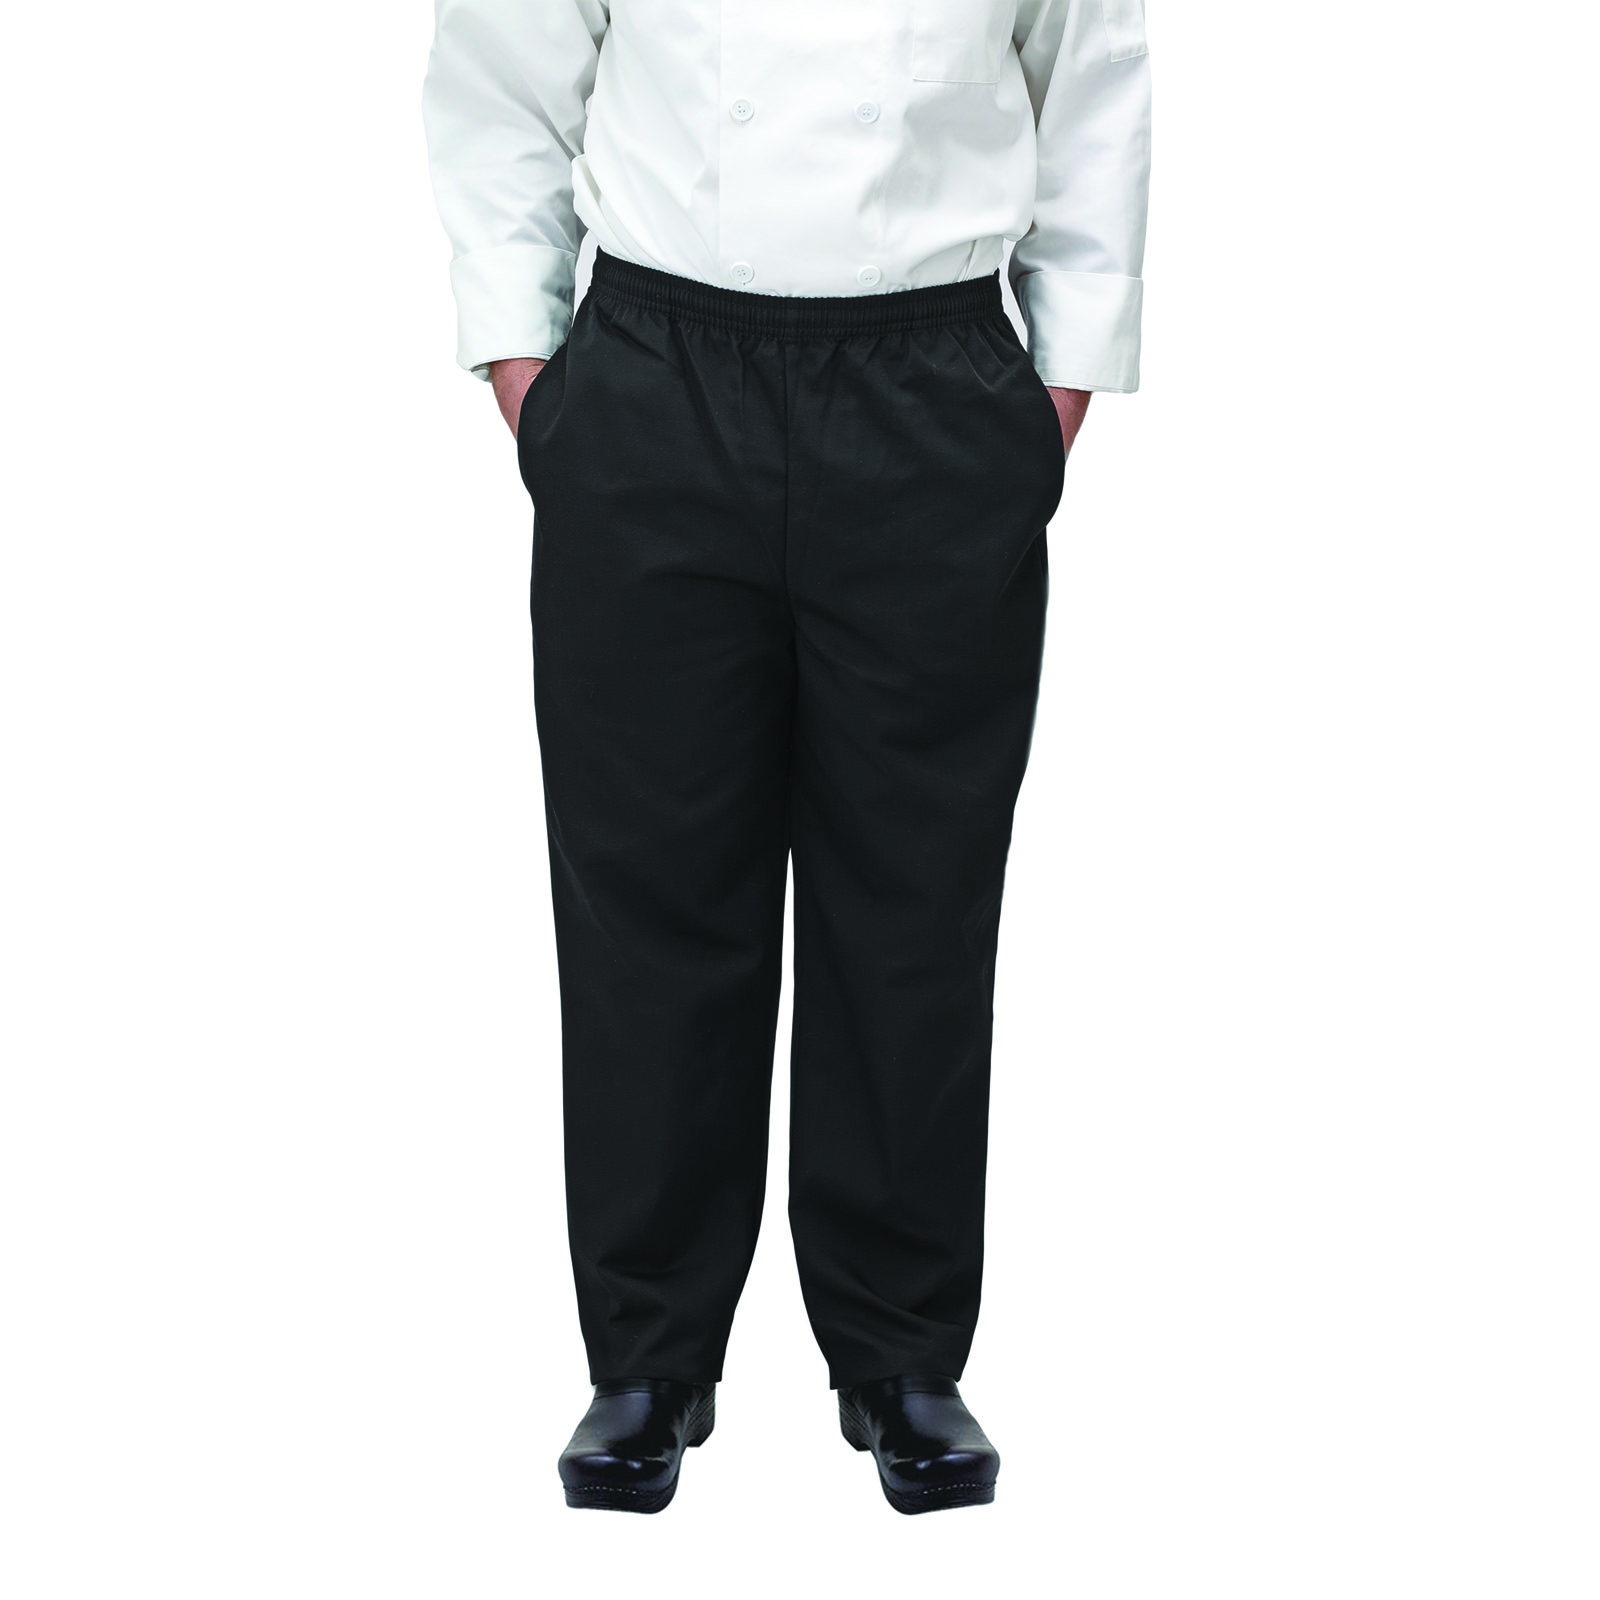 Winco UNF-2KL chef's pants